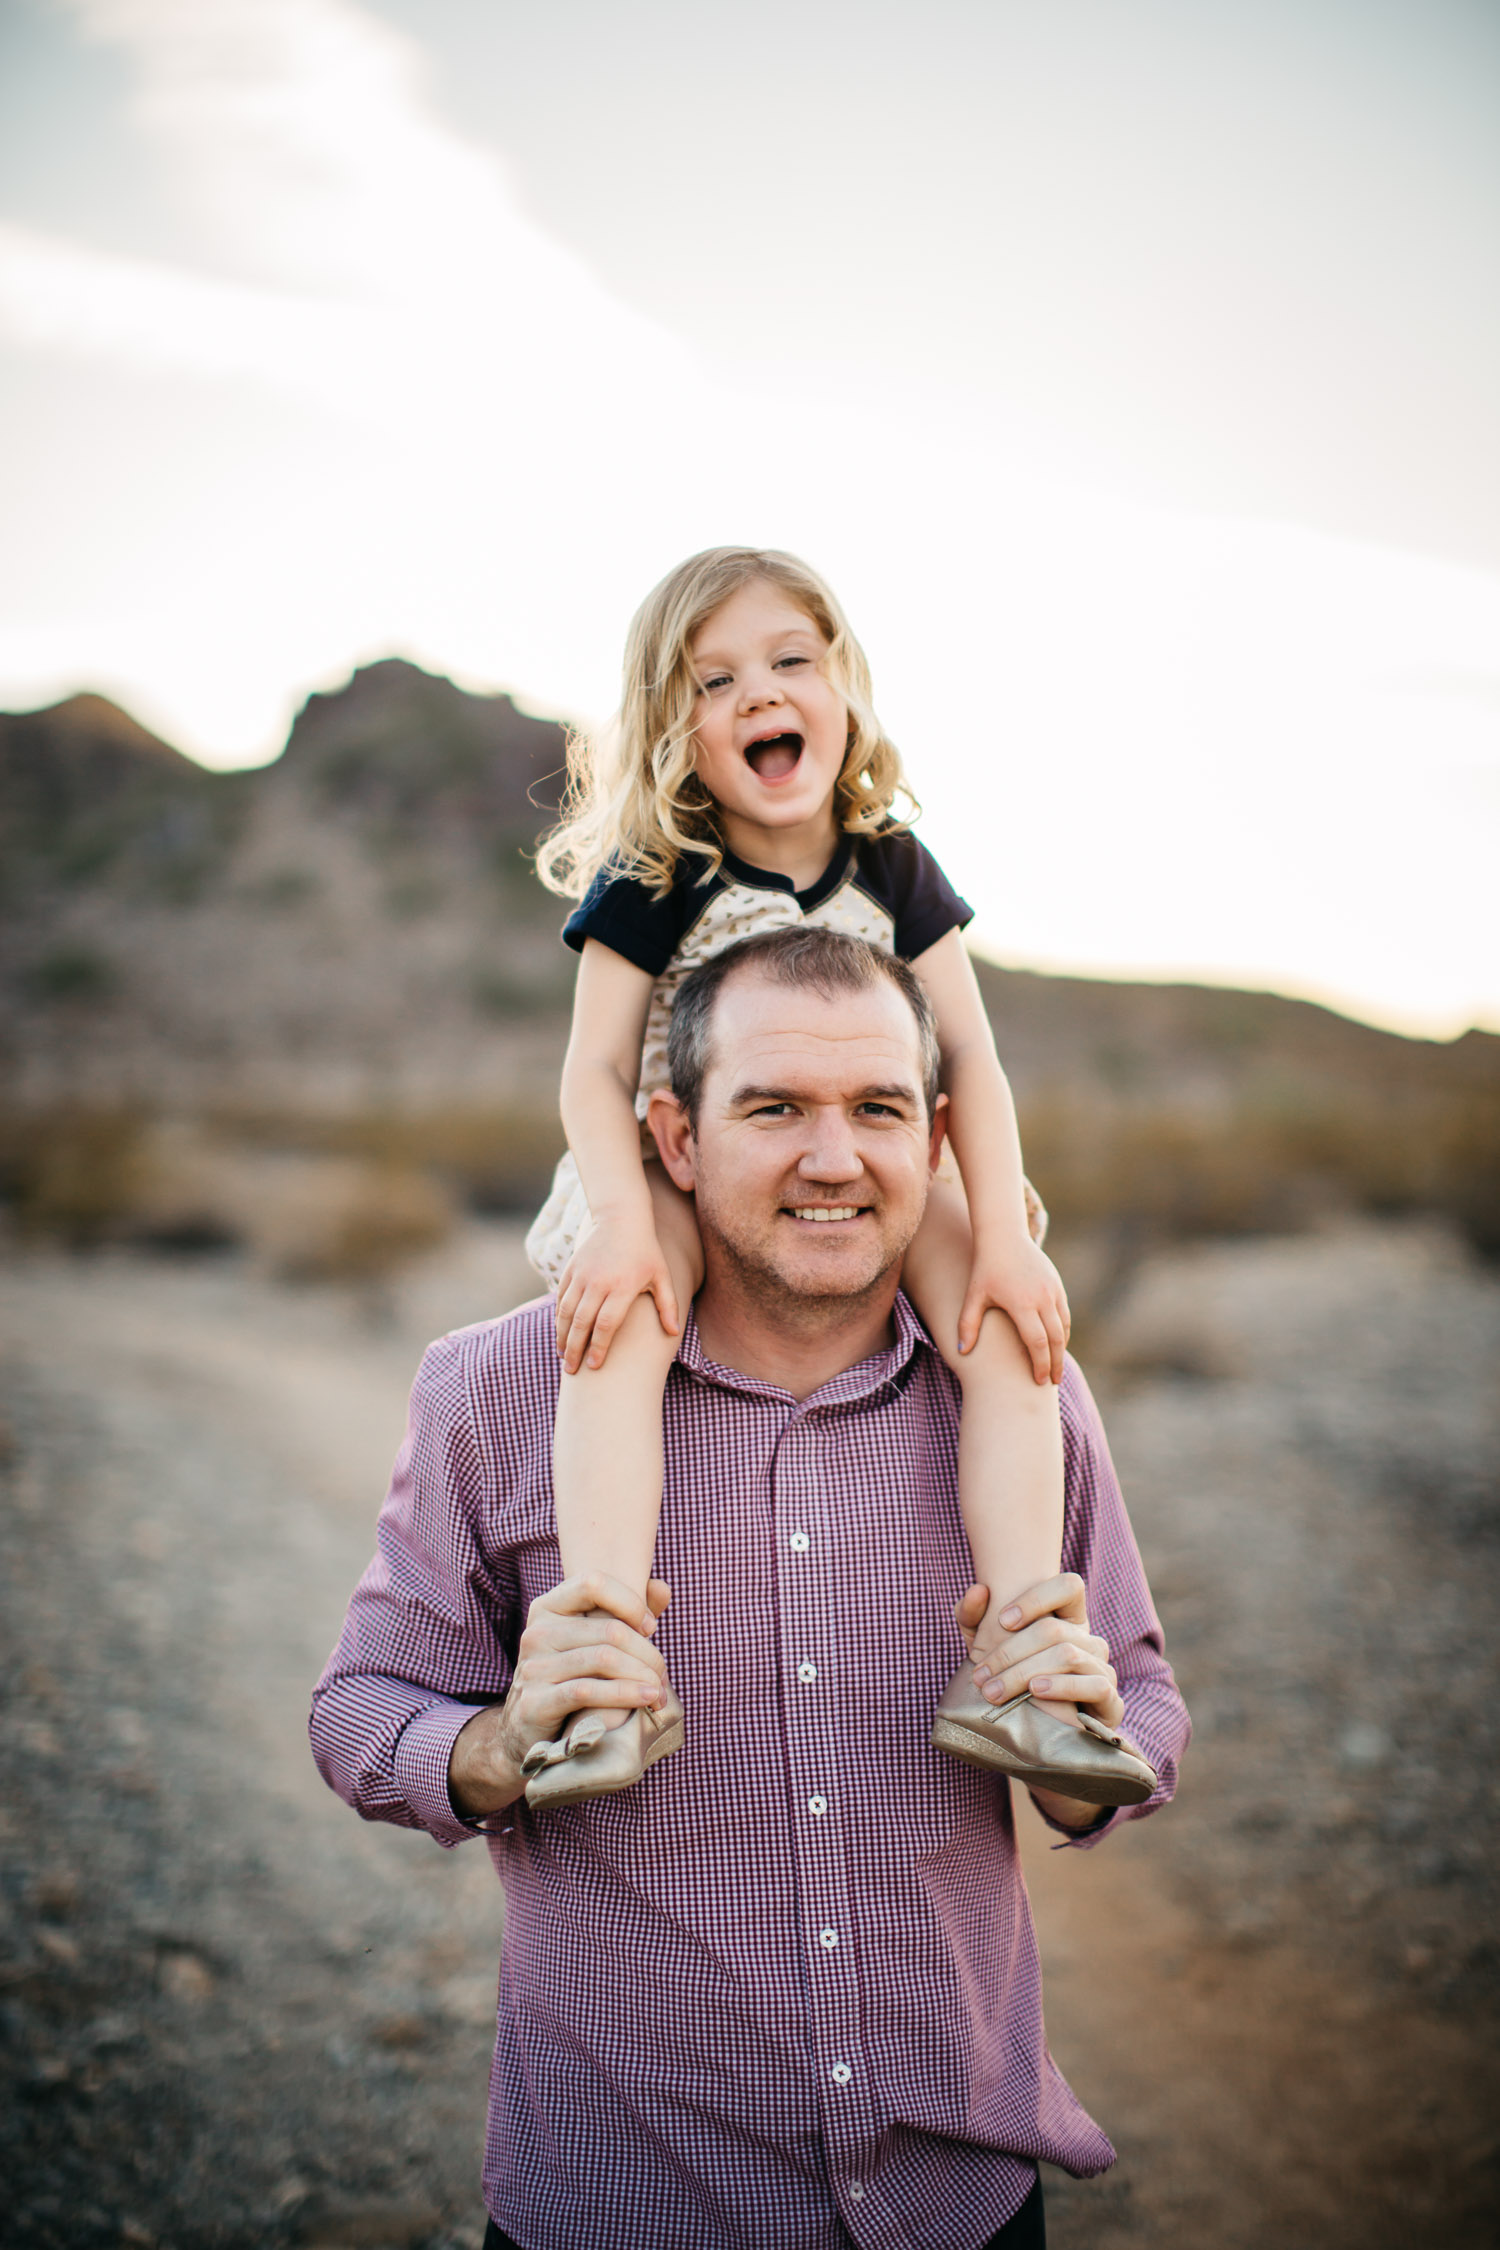 father daughter laughing candid fun family photograph